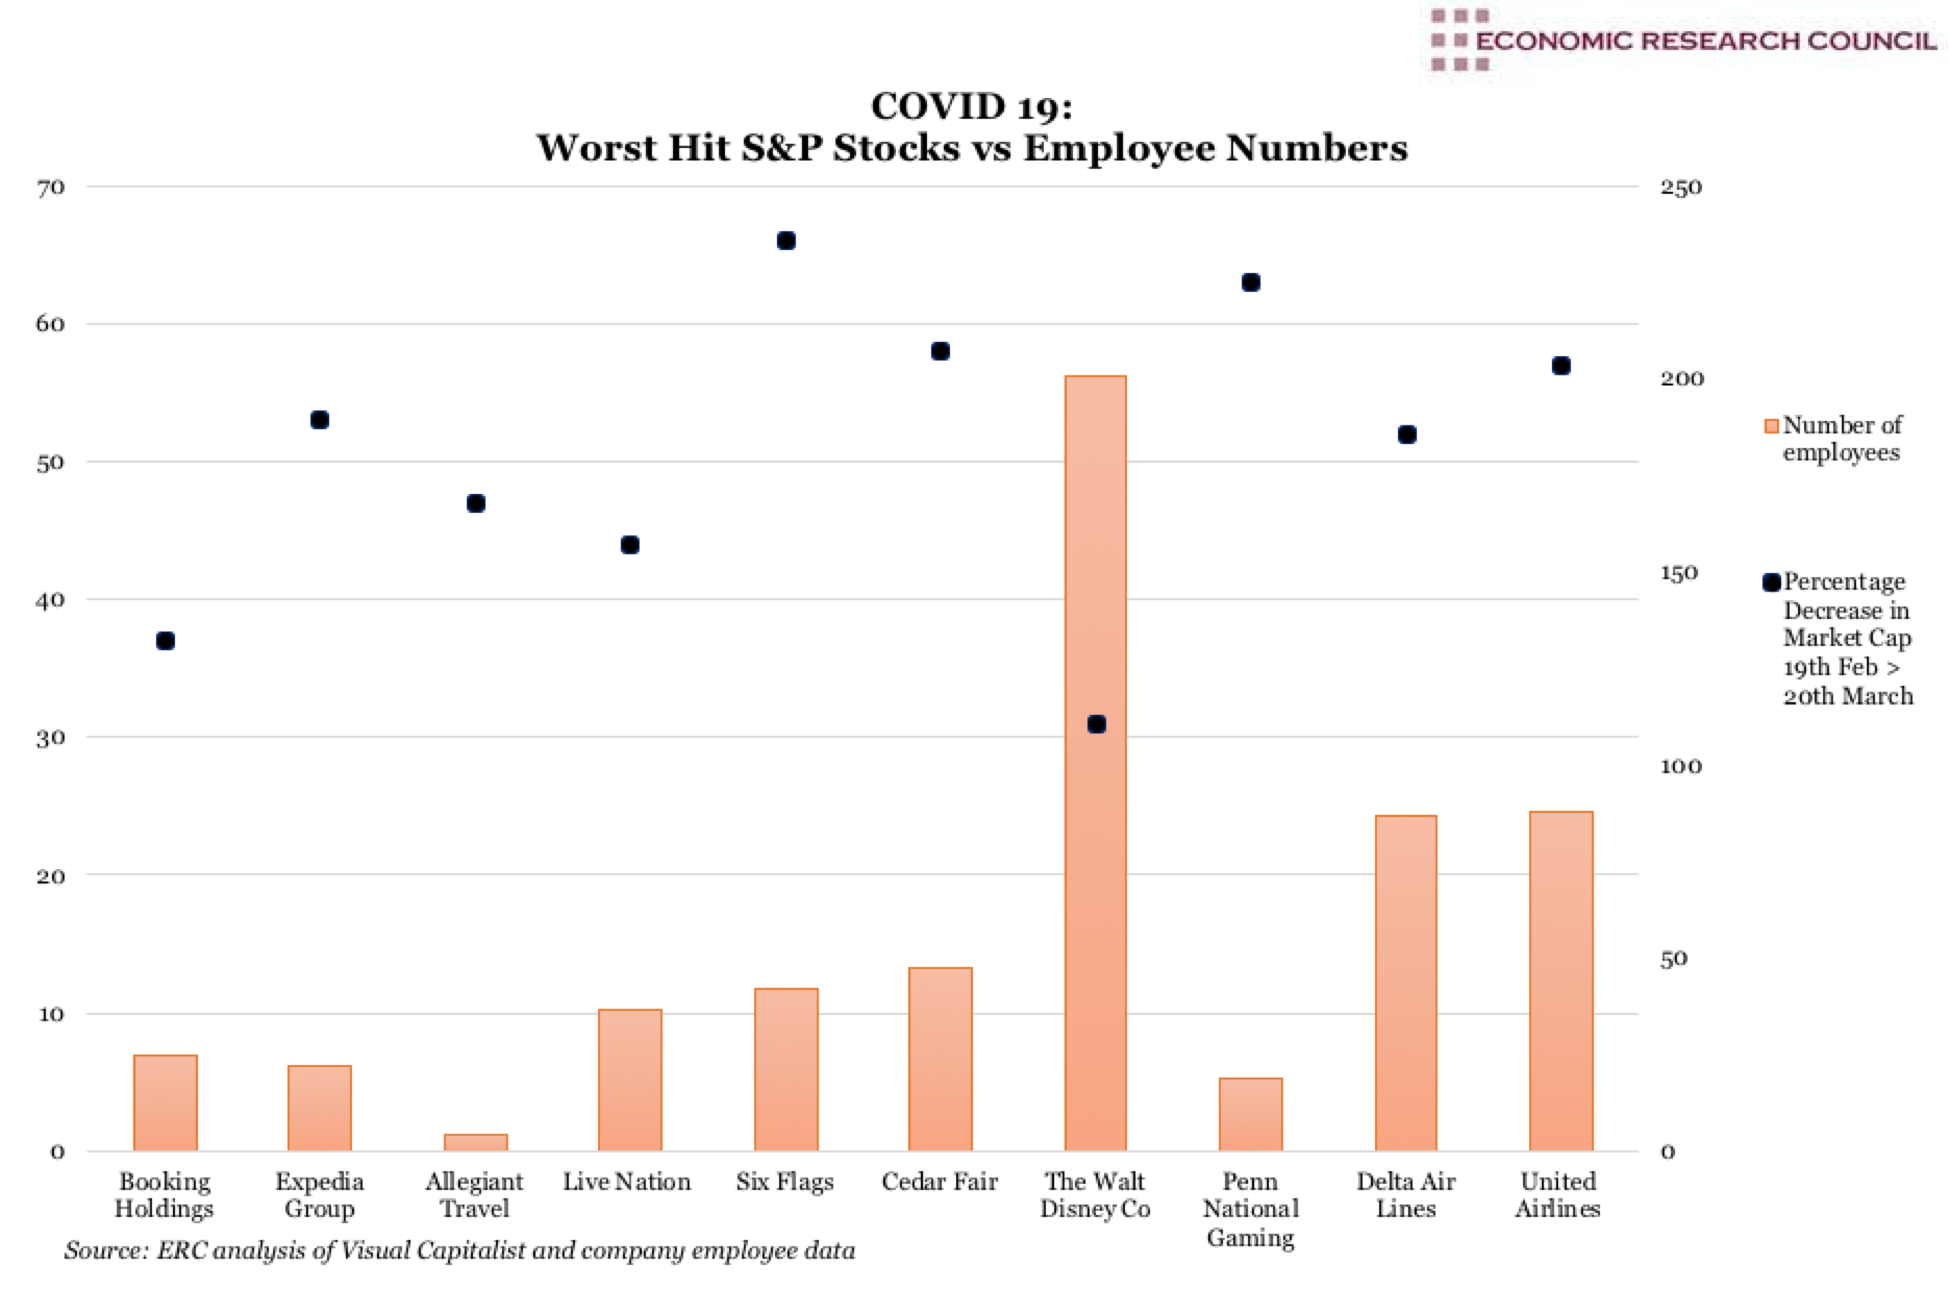 Covid 19: The Worst Hit Stocks vs Employee Numbers